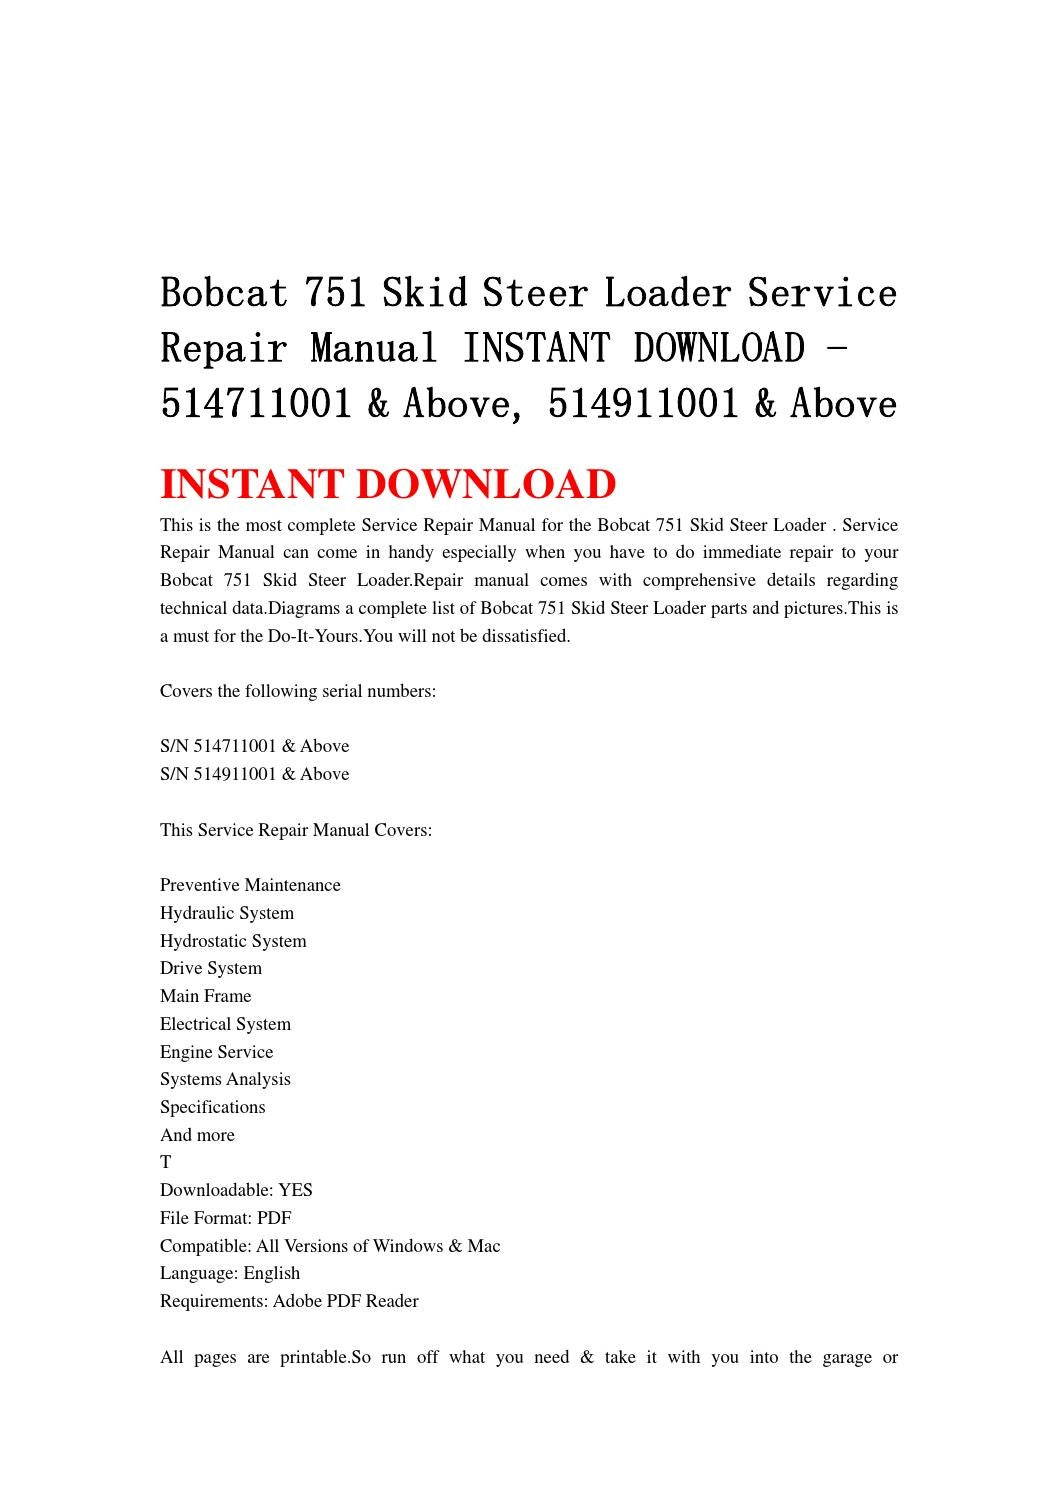 hight resolution of bobcat 751 skid steer loader service repair manual instant download 514711001 above 514911001 a